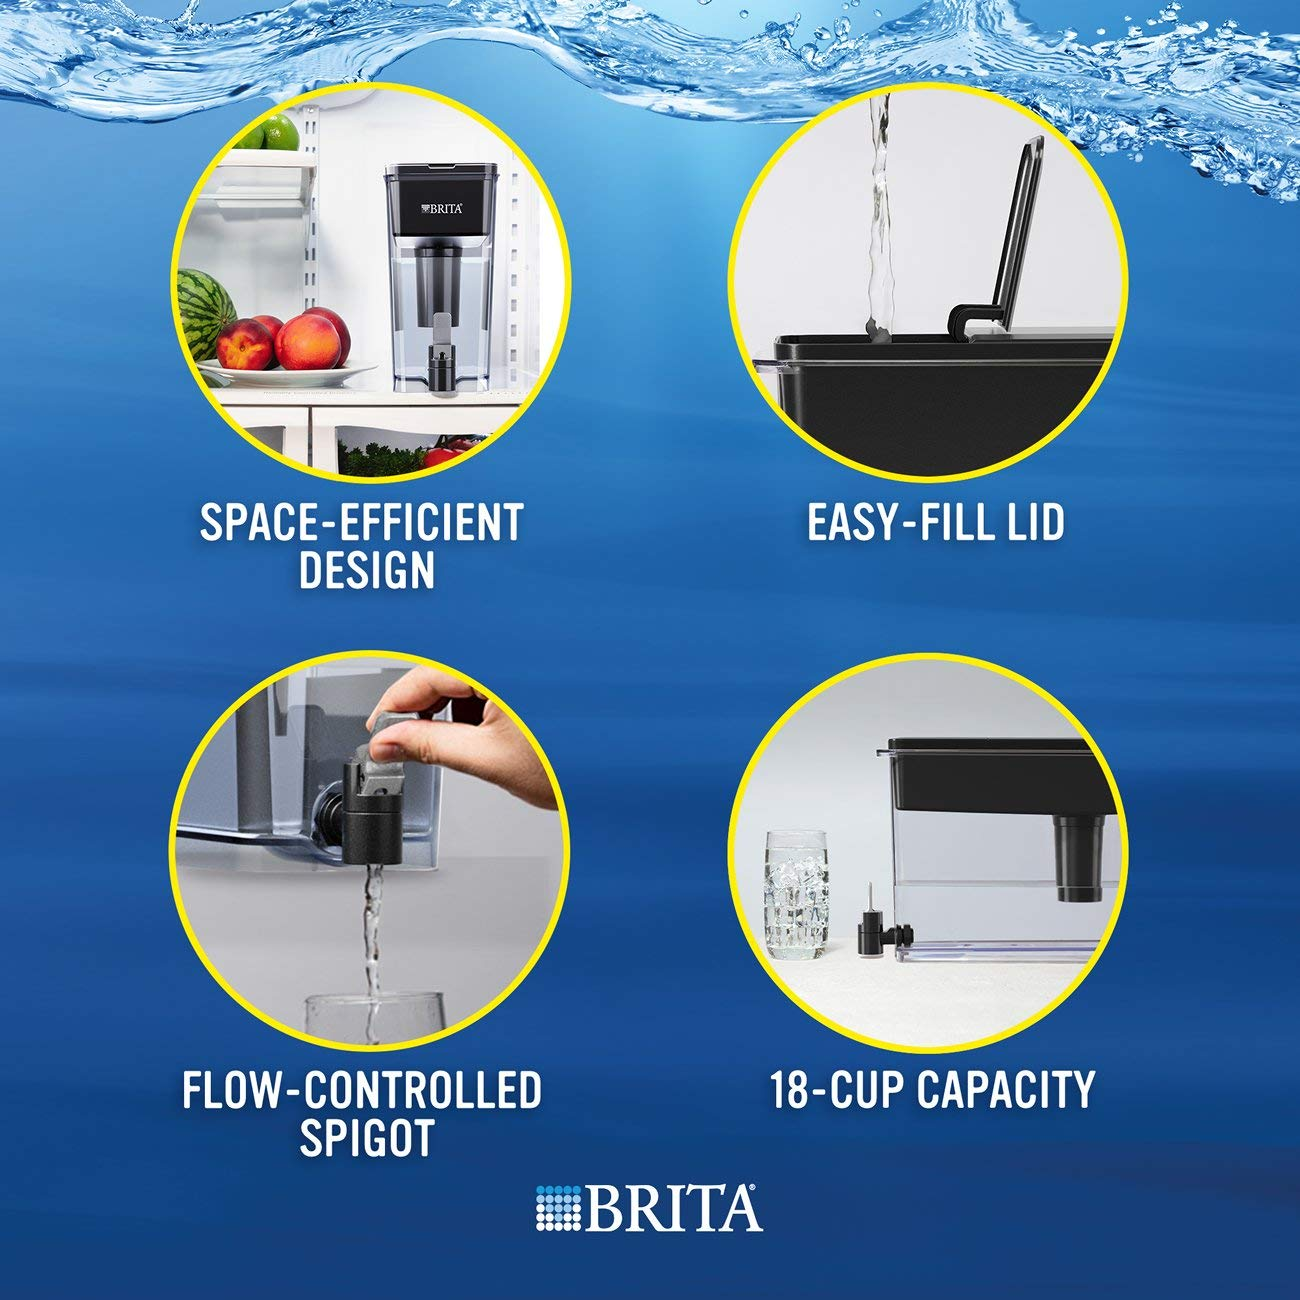 Brita Extra Large 18 Cup UltraMax Water Dispenser and Filter - BPA Free - Black by Brita (Image #4)